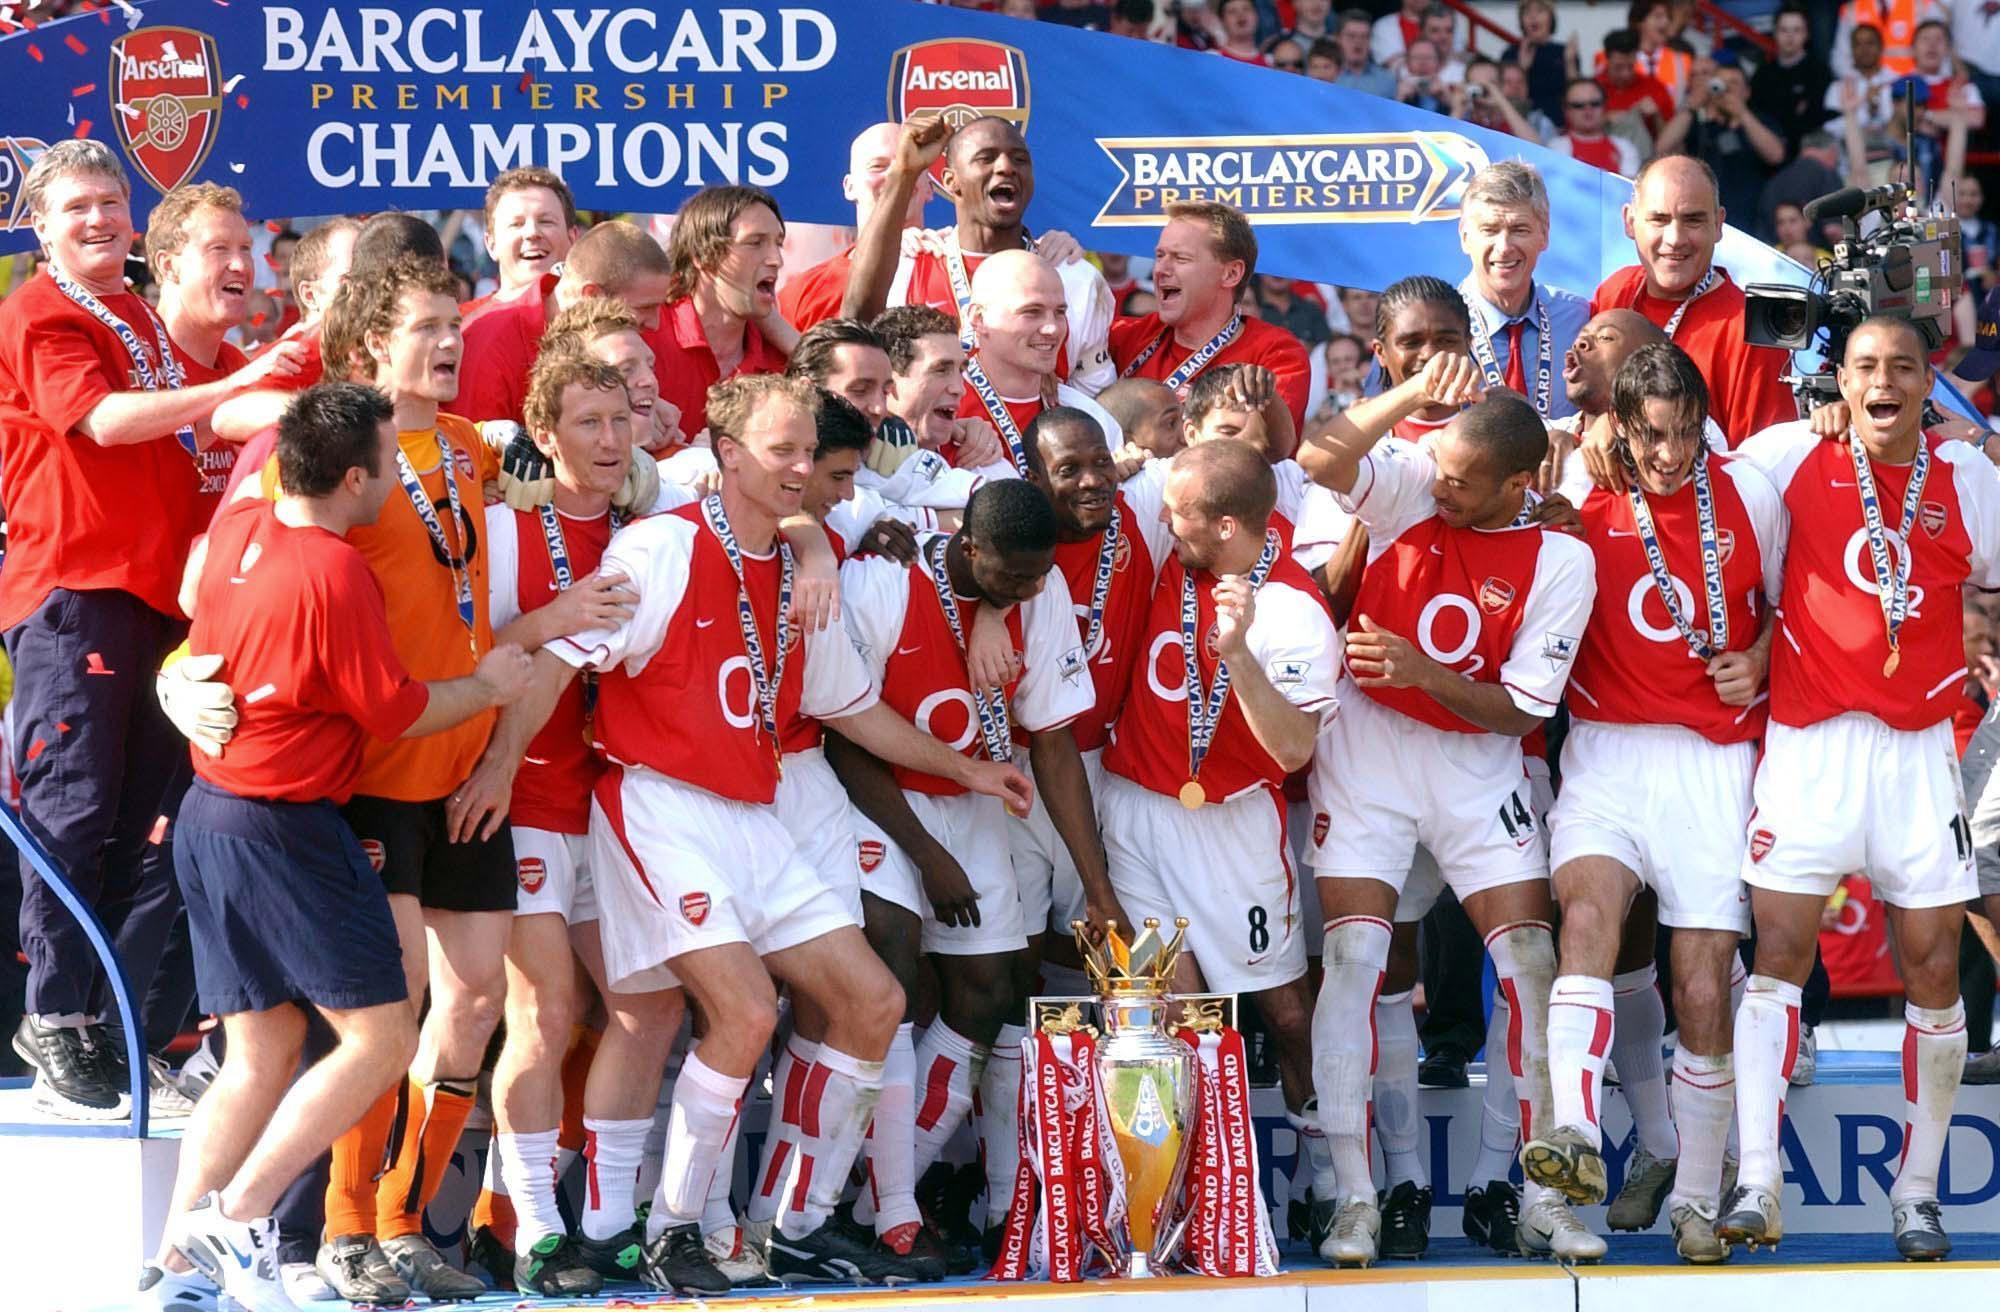 Arsenal's 2003/04 team celebrate winning the Premier League